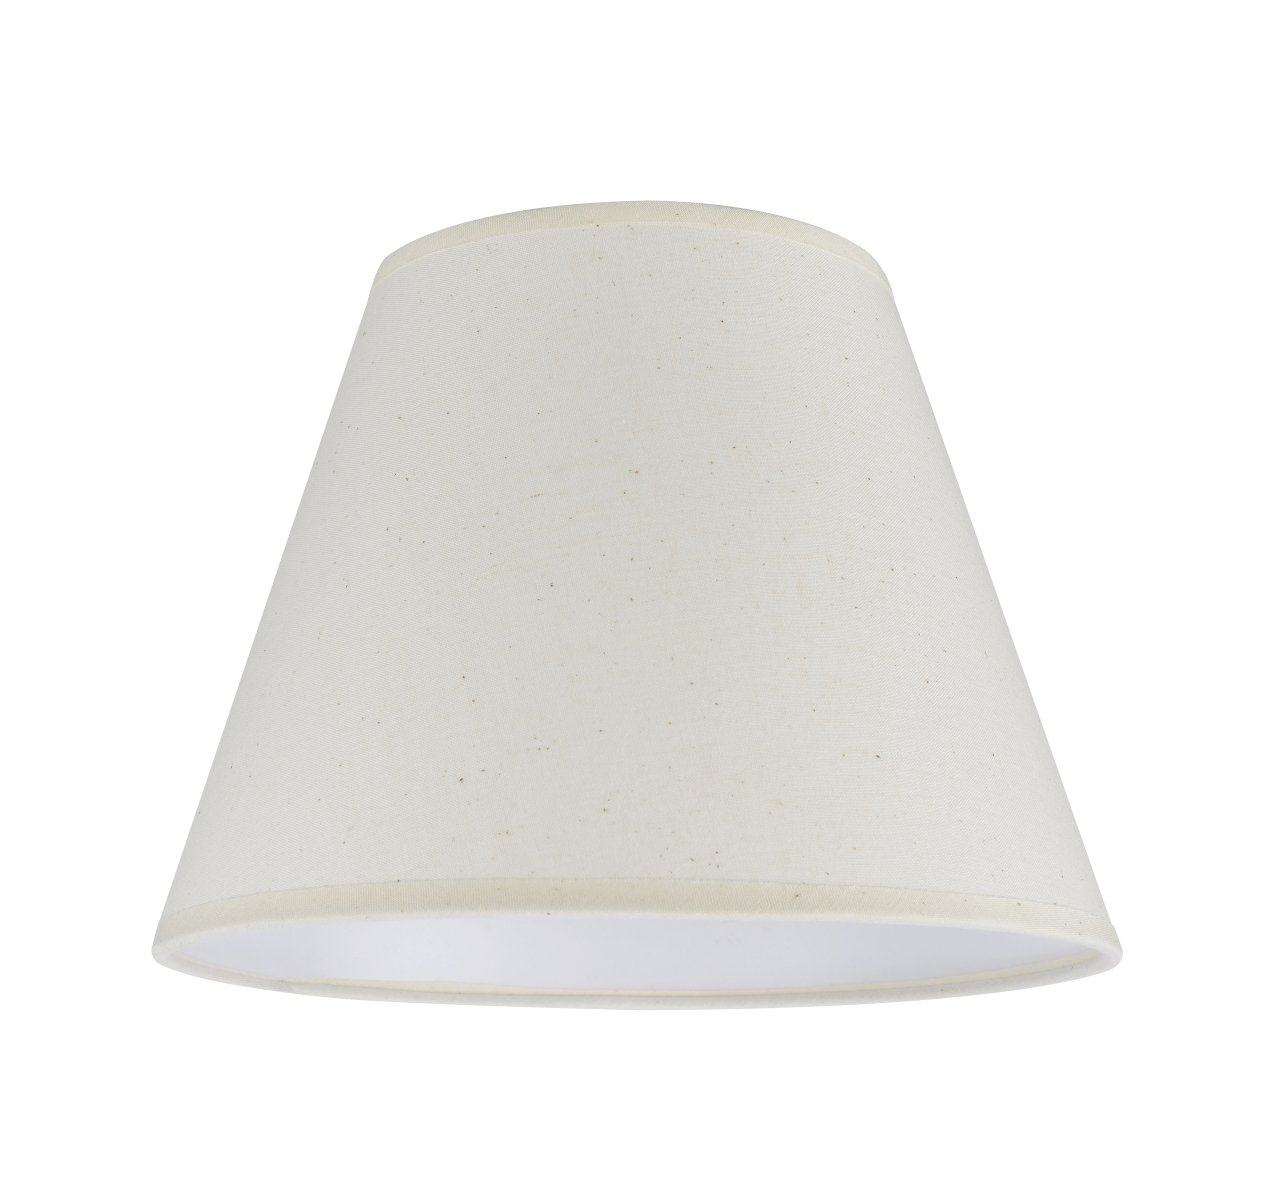 9 wide 9 wide Aspen Creative 32029 Transitional Hardback Empire Shape Spider Construction Lamp Shade in Ivory 5 x 9 x 7 5 x 9 x 7